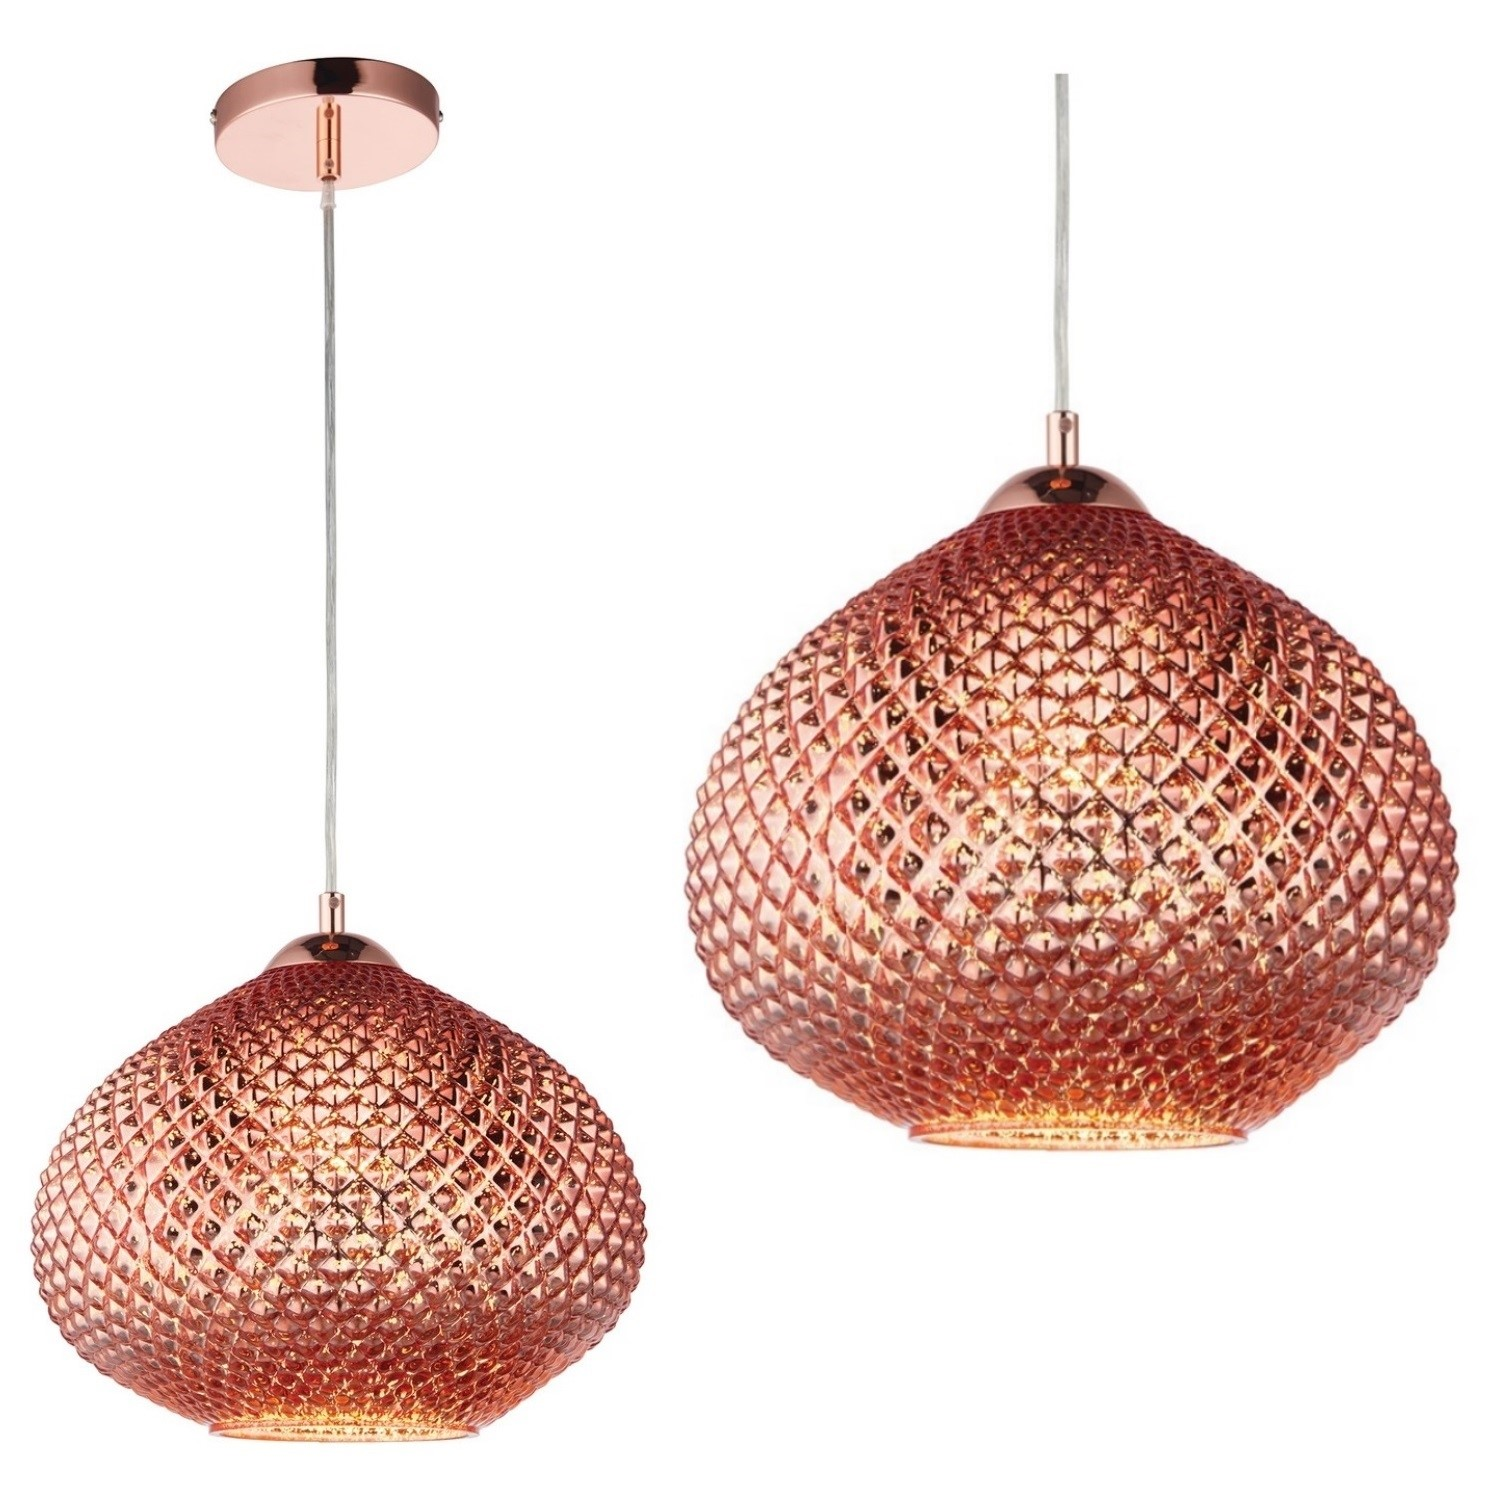 Livia Ceiling Pendant Light With Rose Gold Glass Finish Modern Style Furniture123